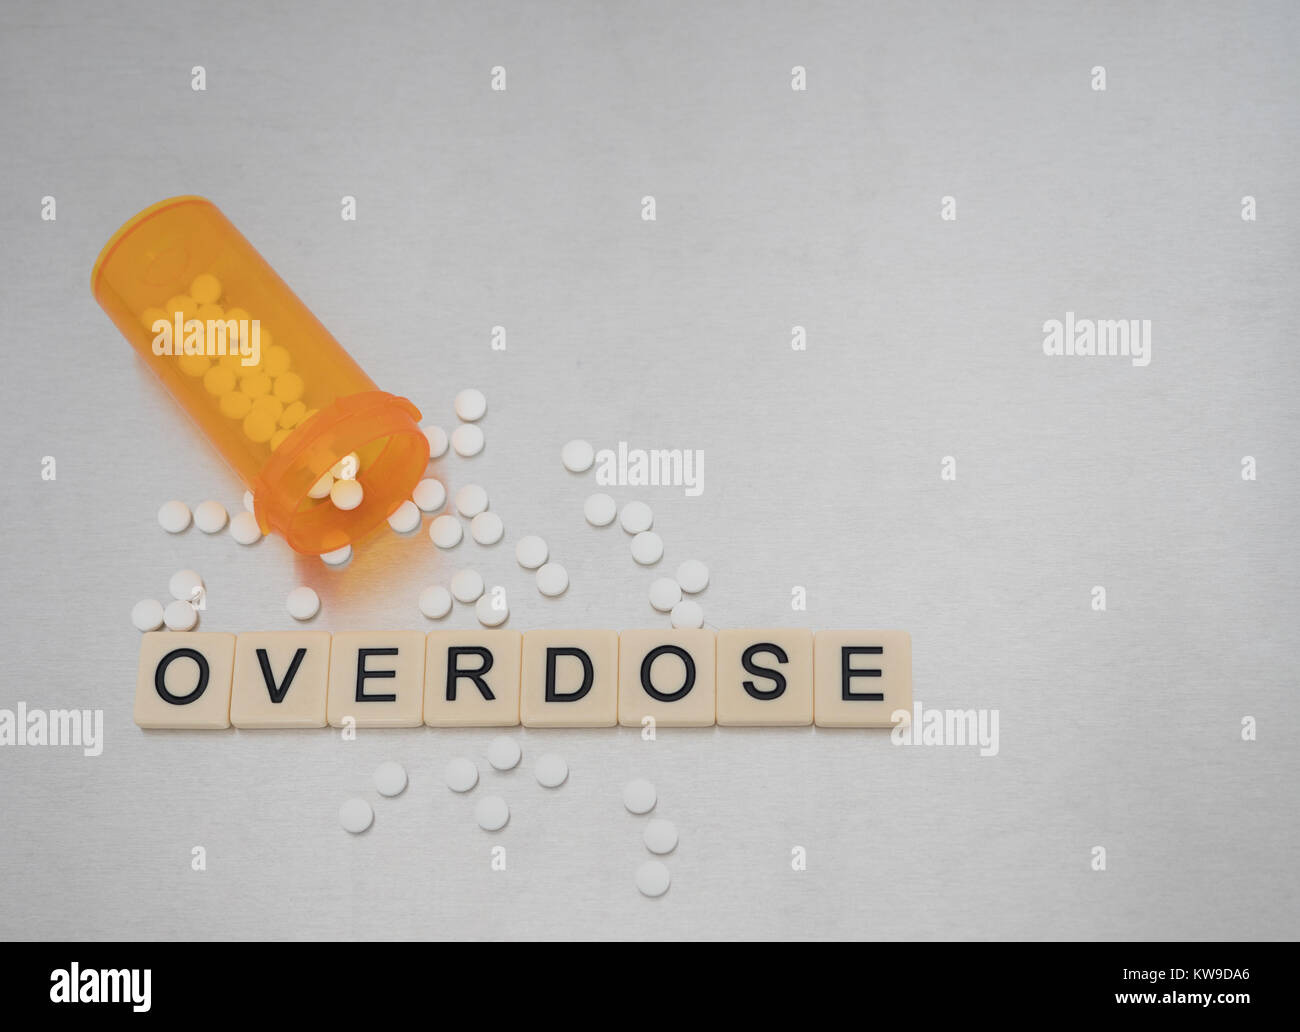 Overdose spelled with tile letters placed in a row with an open bottle of oxycodone tablets. Photographed from above - Stock Image